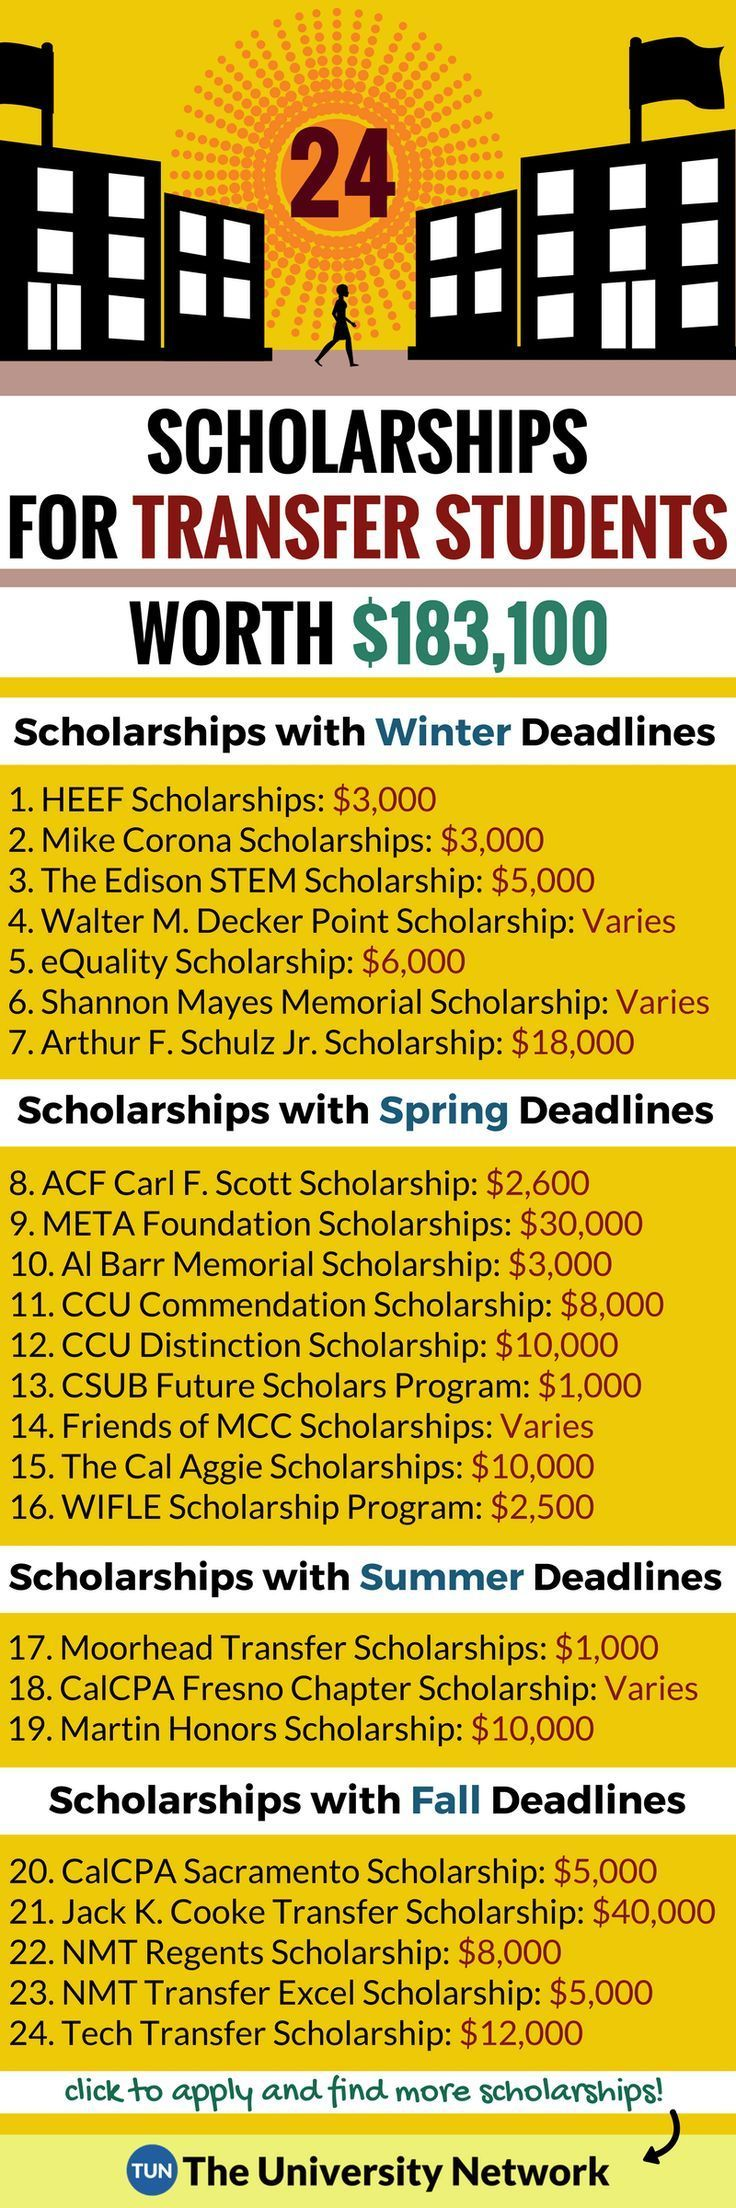 Here is a selection of #Scholarships For #Transfer #Students that are listed on TUN.